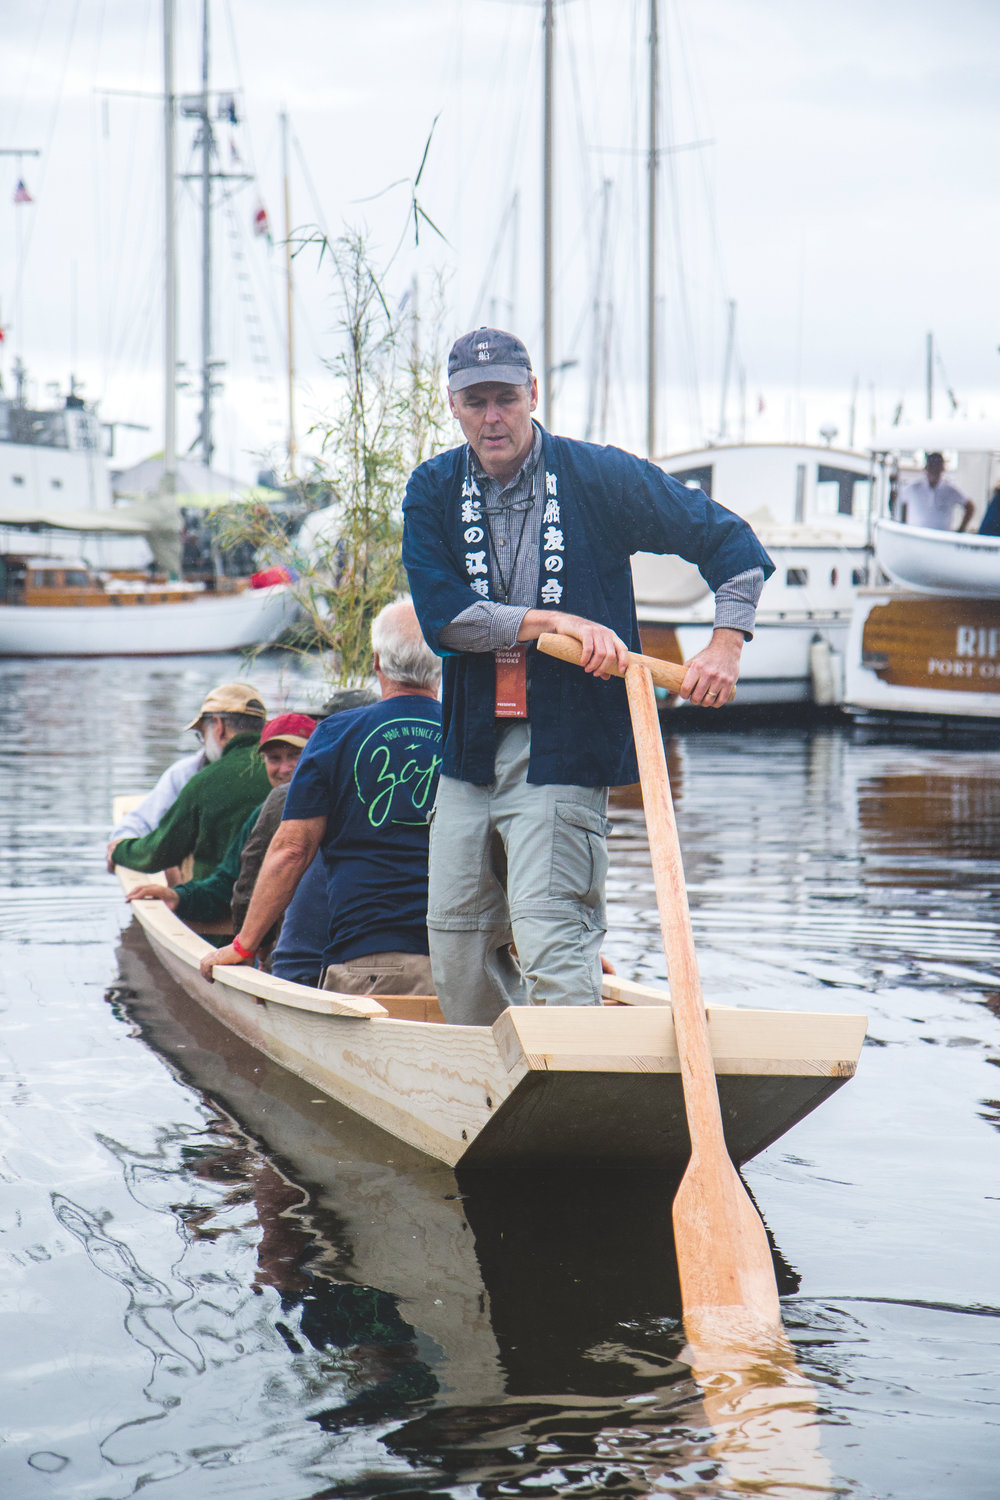 Douglas Brooks uses the sculling oar to launch the Shinano river boat with the boat builders.